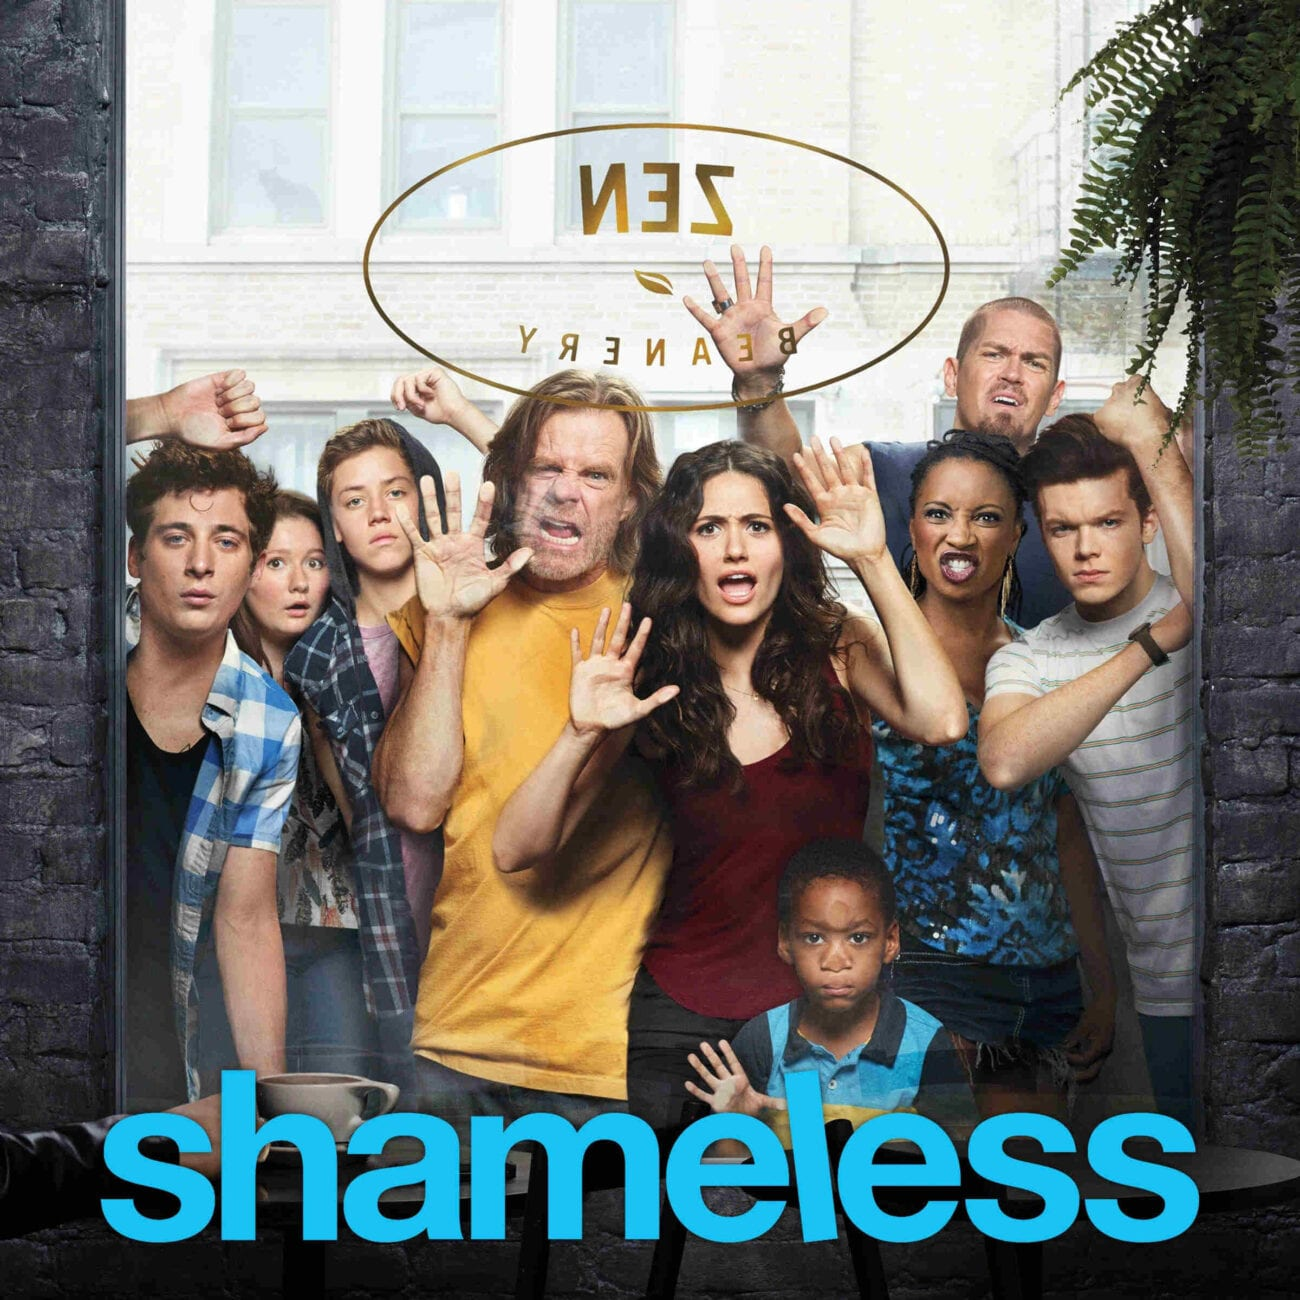 'Shameless' has some of the wildest sex scenes in all of television. In honor of the series ending, take a look at some of the show's spiciest scenes.